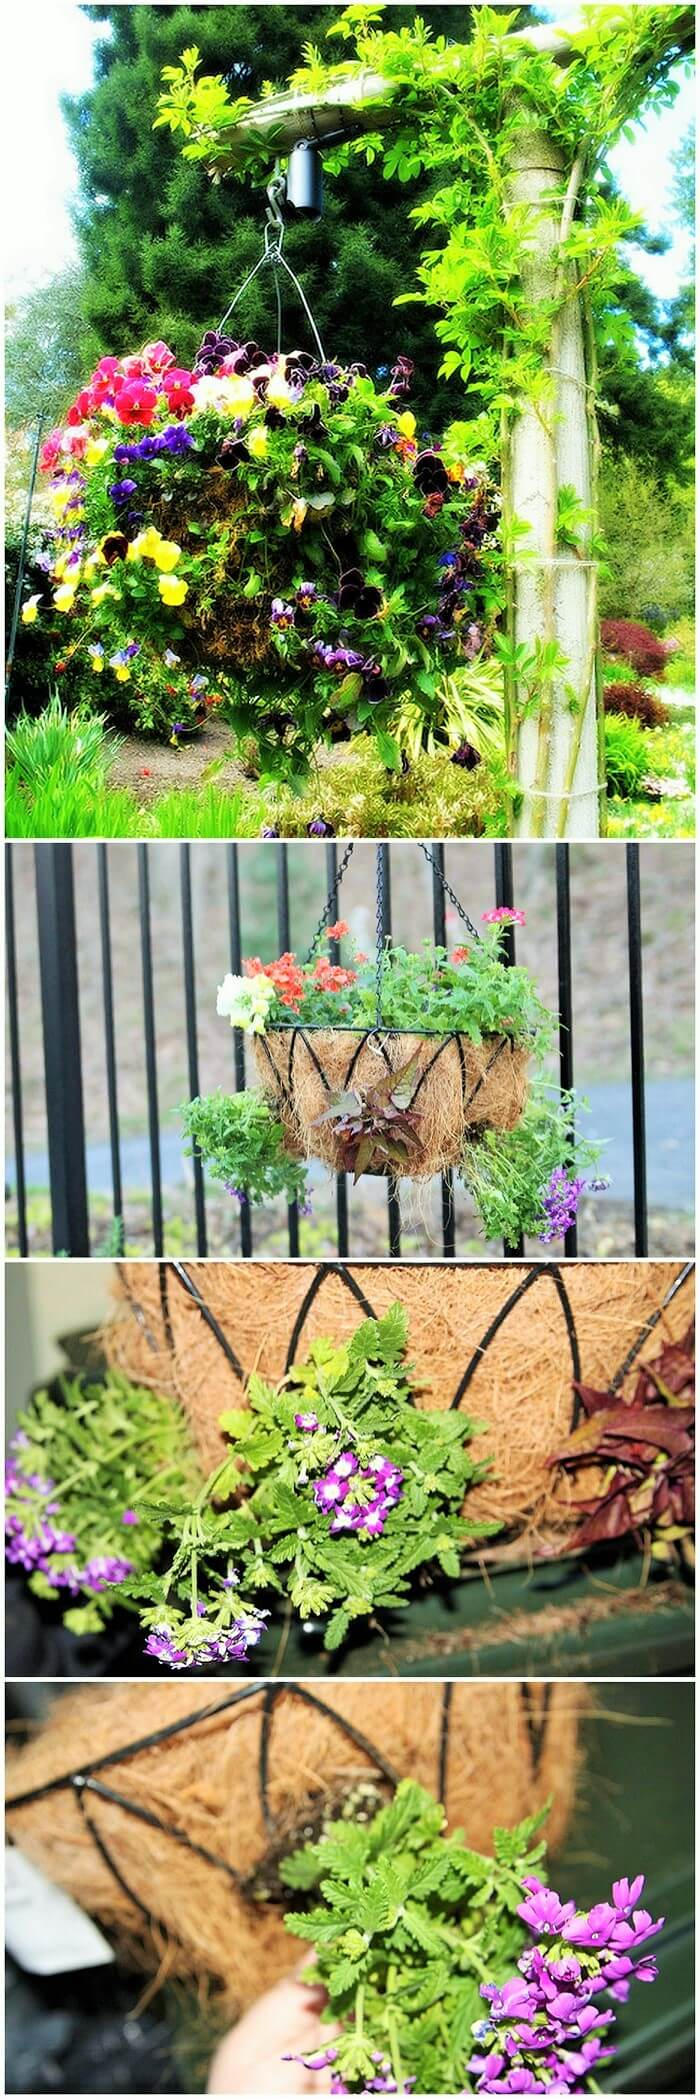 Small-Backyard-Landscaping-Ideas-1 (3)